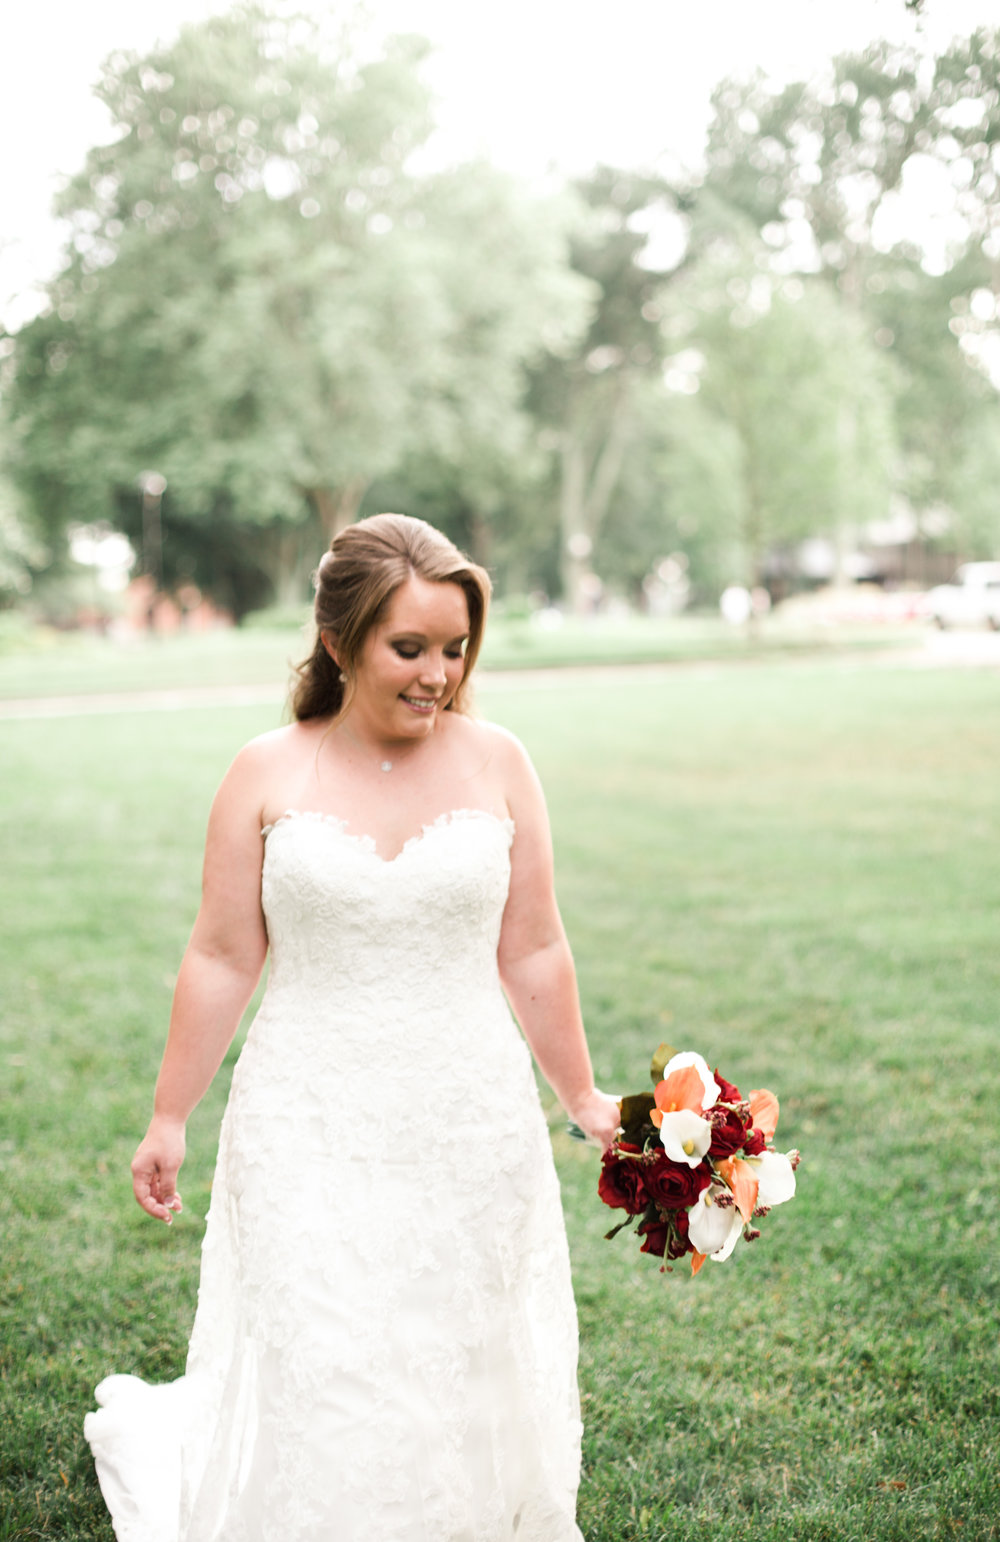 gabbie_bridal_poured_out_photography-29.jpg